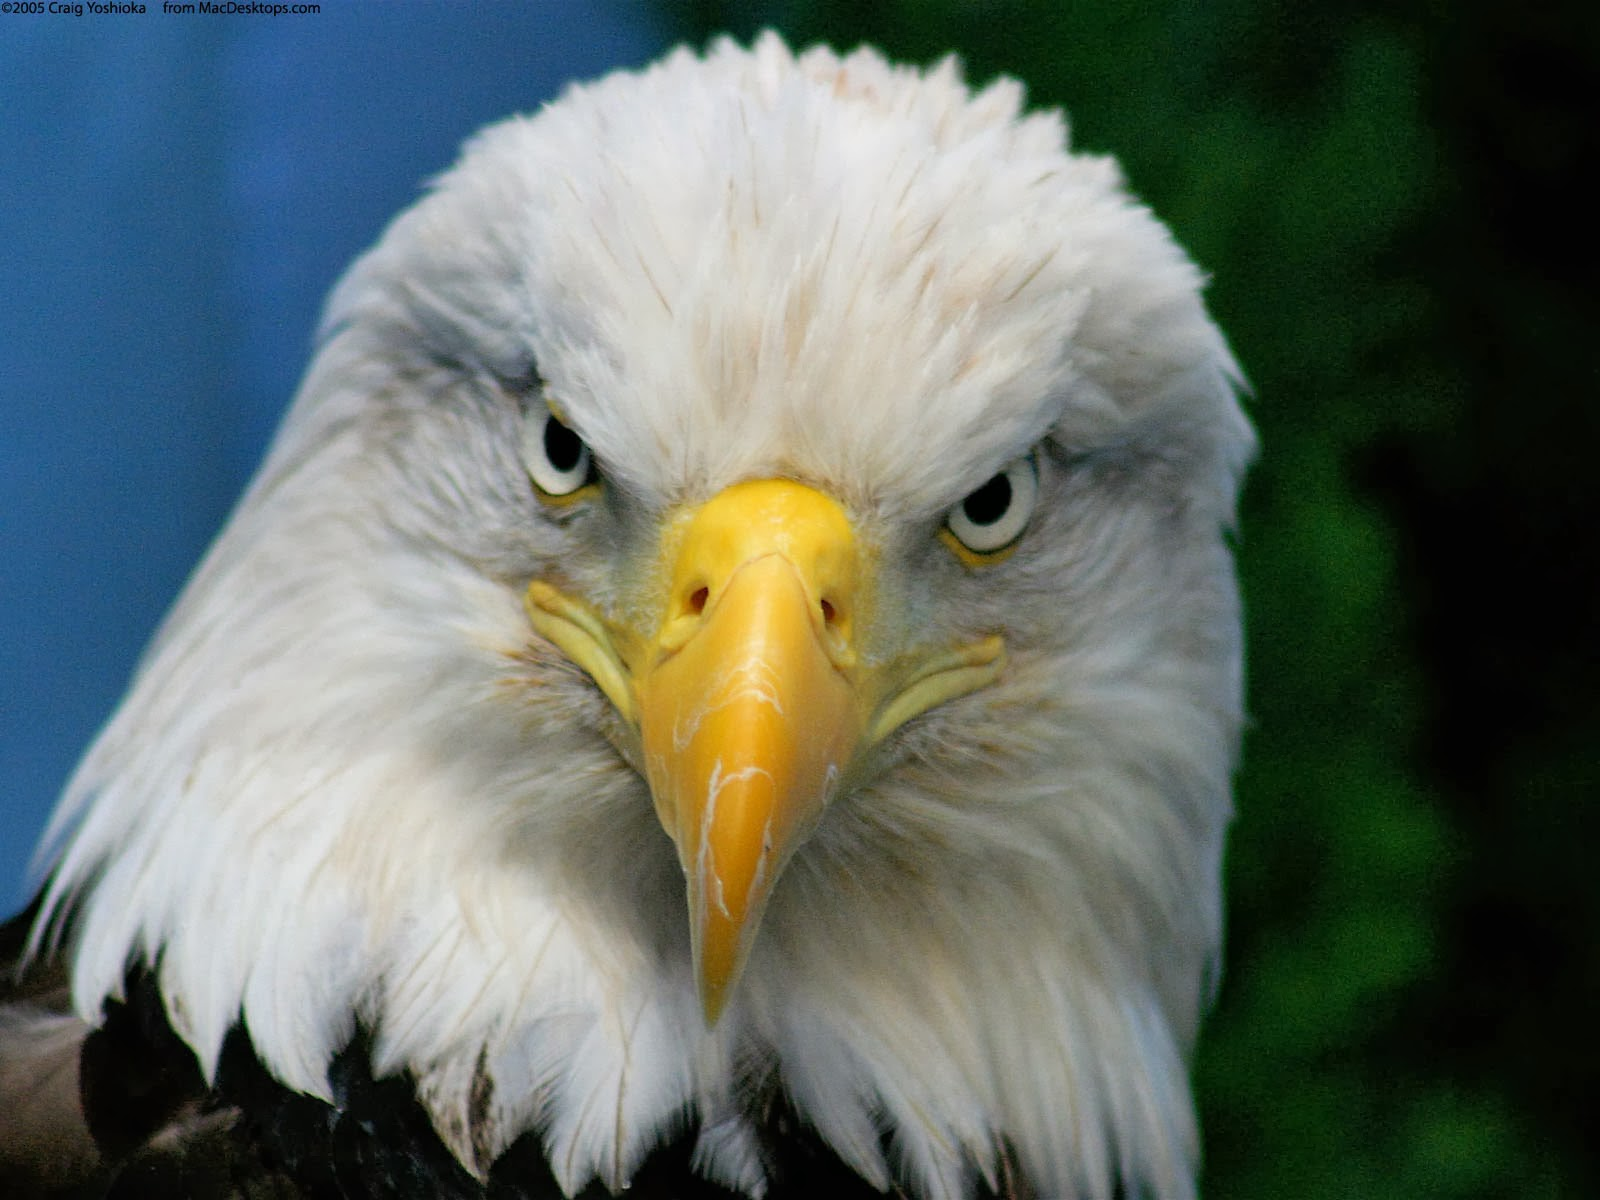 Funny bald eagle wallpapers funny wallpapers funny bald eagle wallpapers voltagebd Image collections